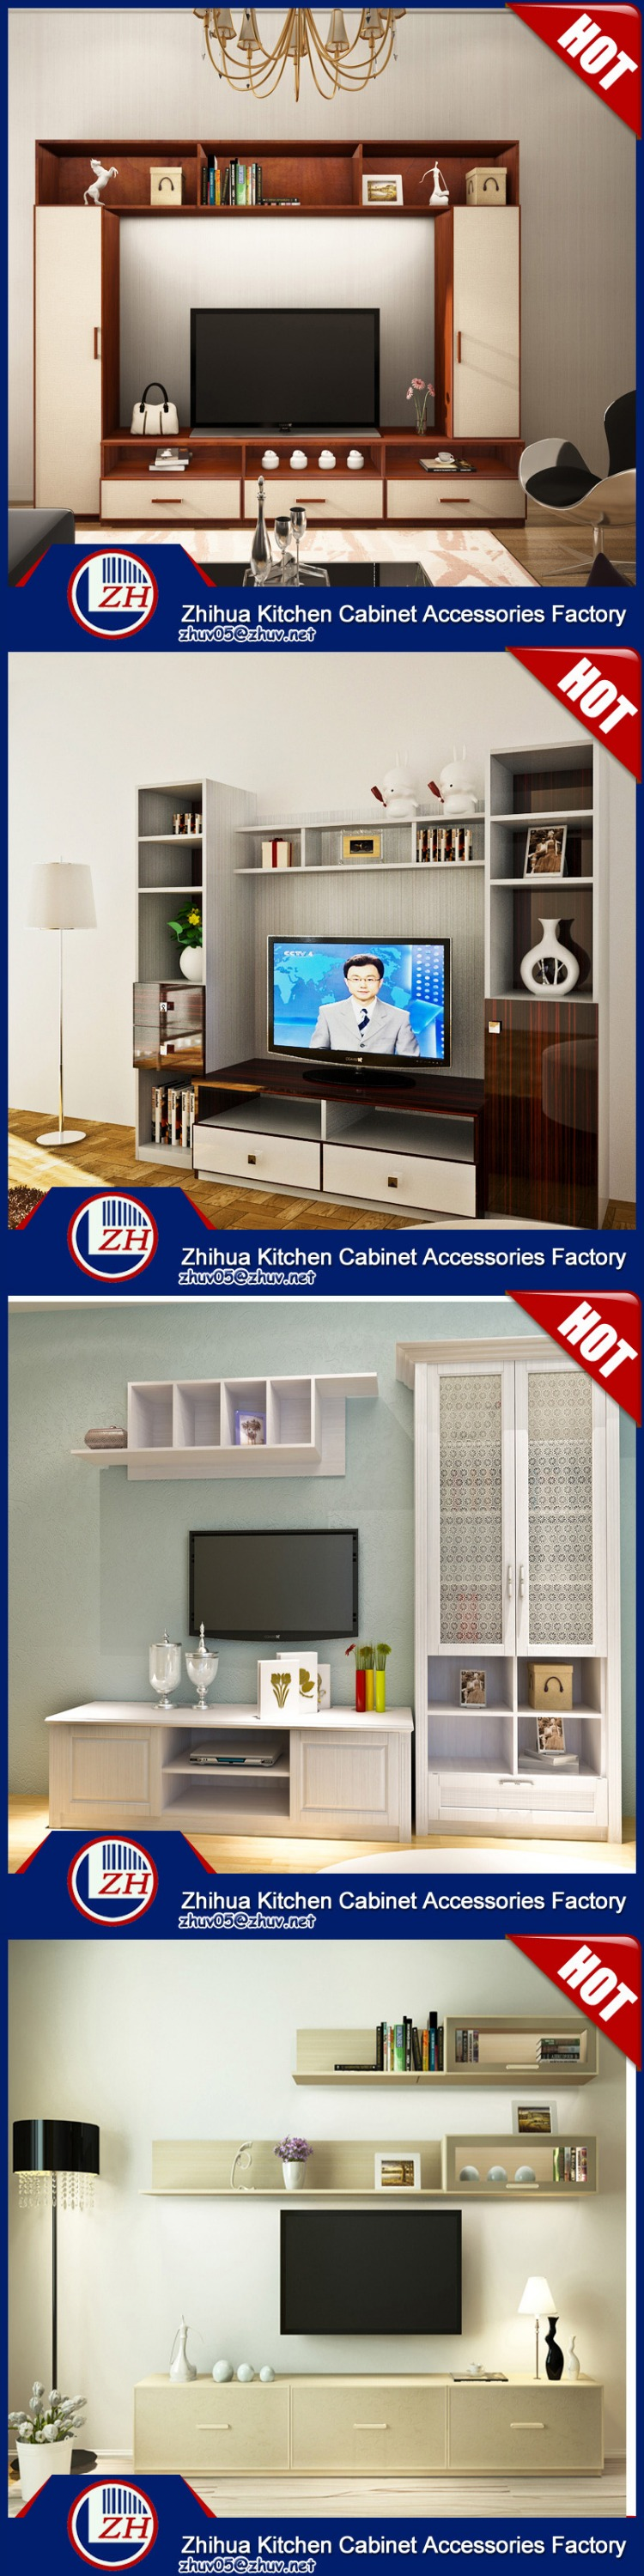 Guangzhou zhihua kitchen cabinet accessories factory - Modern Living Room Tv Cabinet Tv Lcd Wooden Cabinet Designs